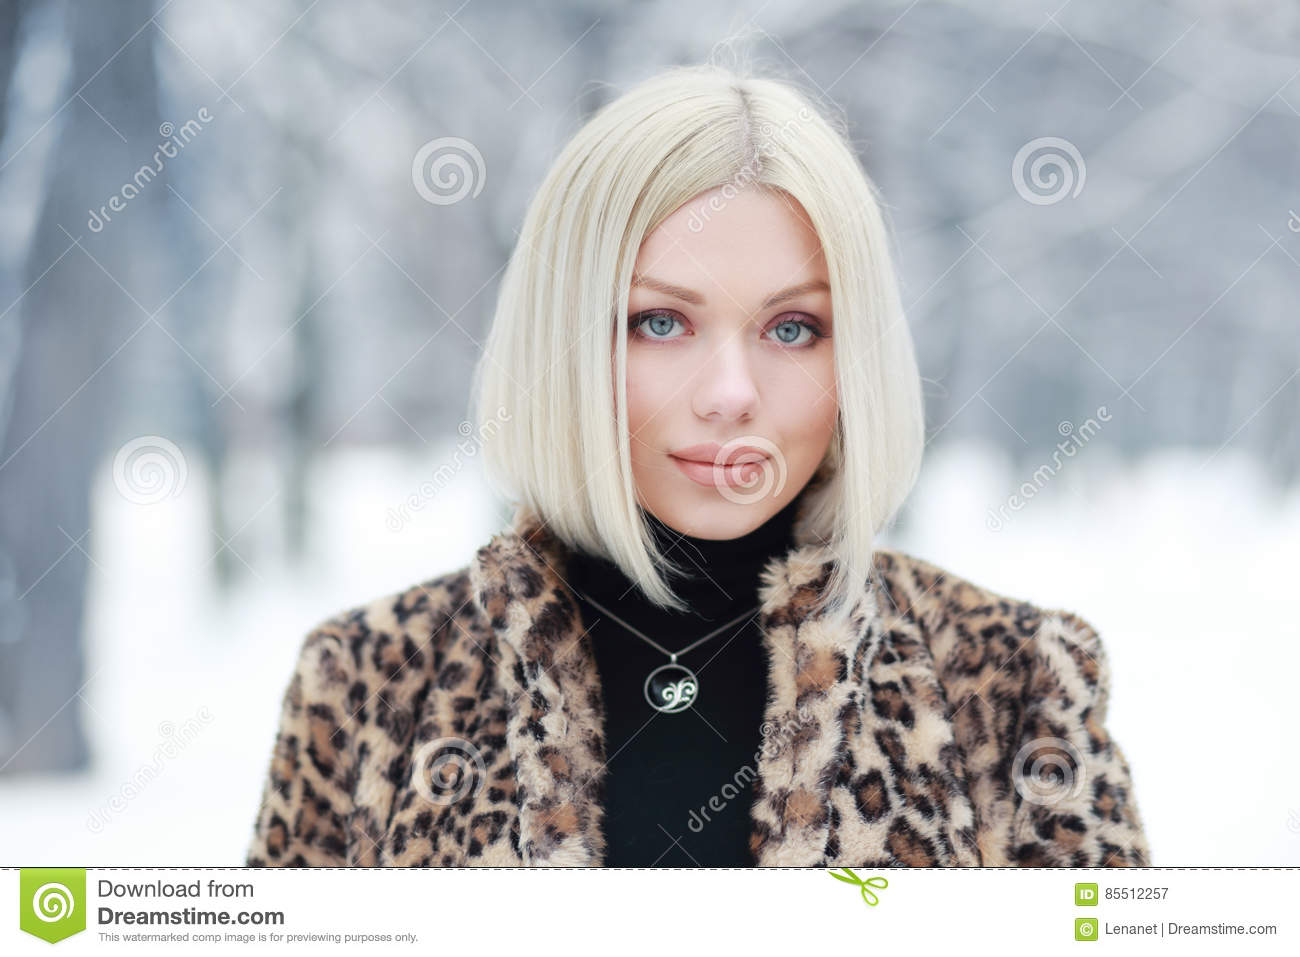 d2e6ab707 Woman portrait in winter stock image. Image of hair